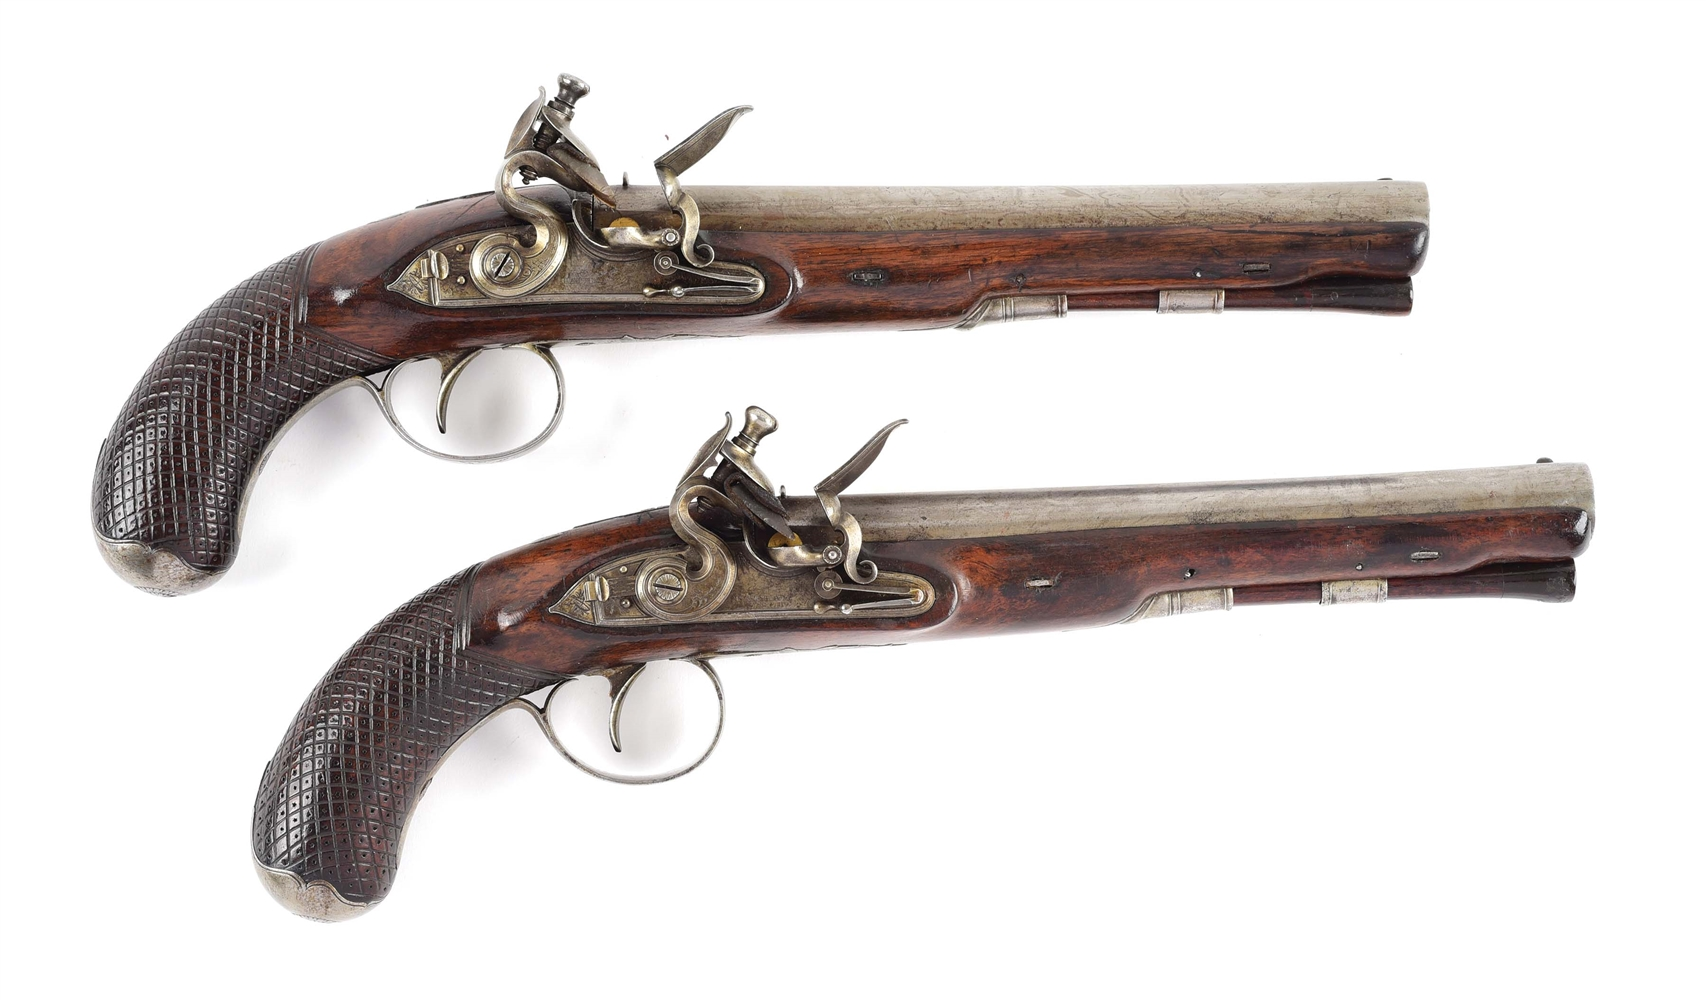 (A) IMPORTANT CASED PAIR OF FLINTLOCK DUELING PISTOLS BY TATHAM, PRESENTED TO CAPTAIN DANIEL TYLER OF BUNKER HILL FAME.